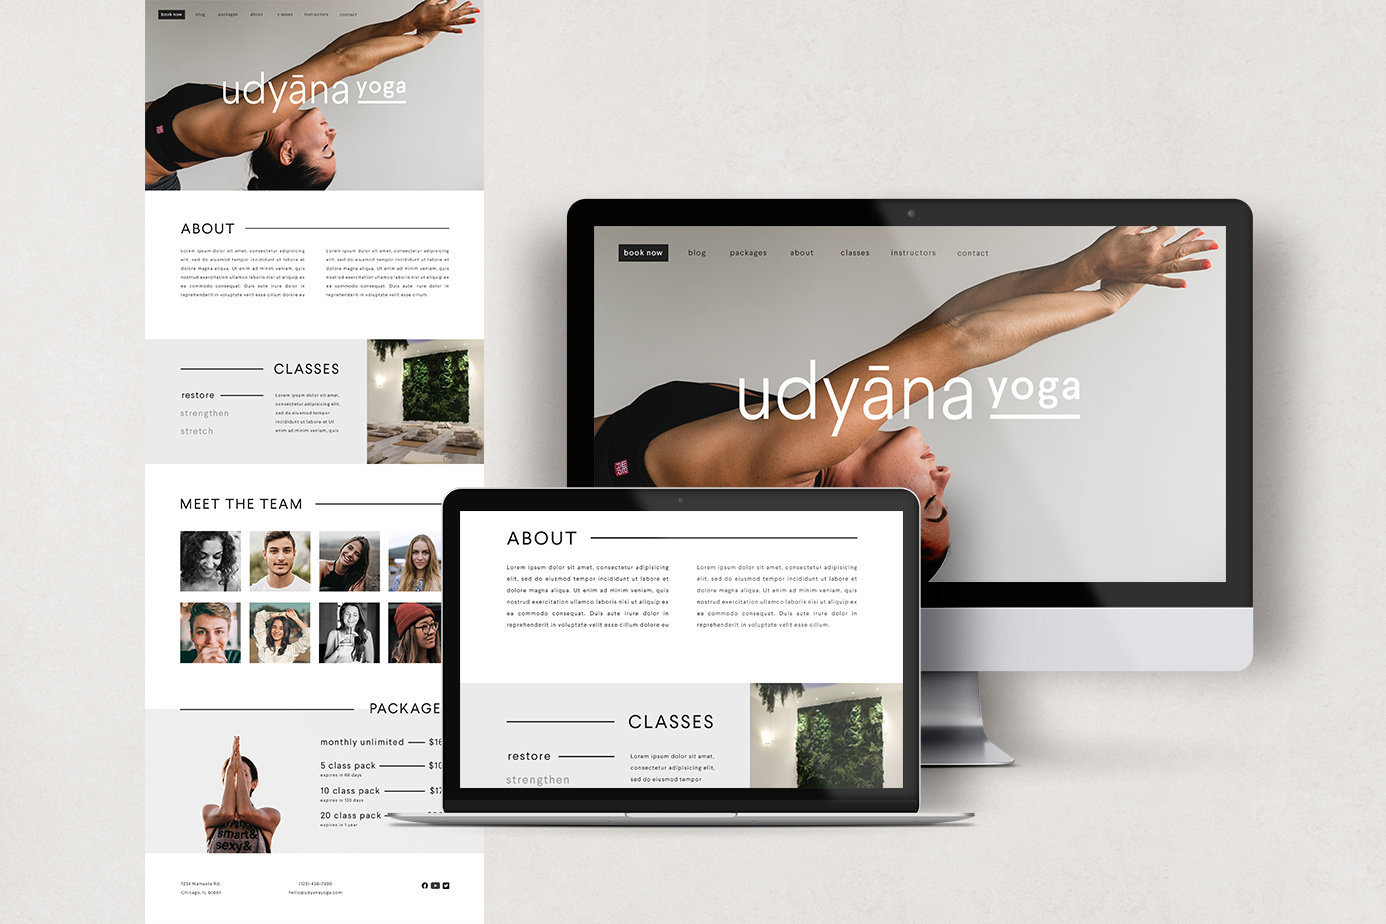 udyana_yoga_website_mockup_2